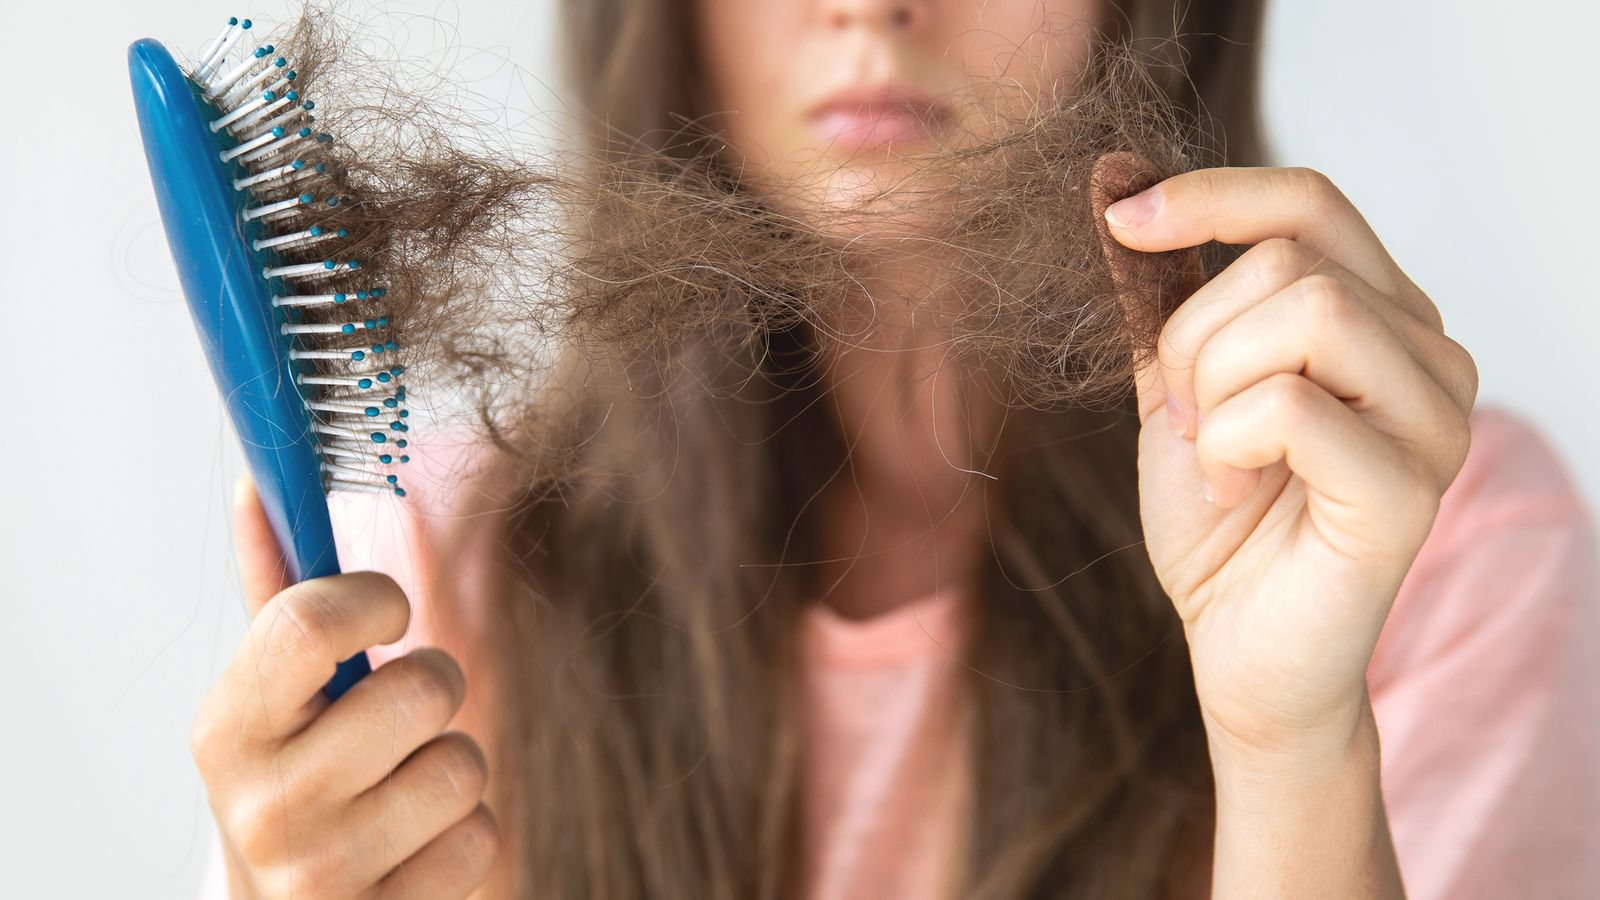 Hair loss has found to be a long-term symptom of COVID-19 in a new study. Pic: istock